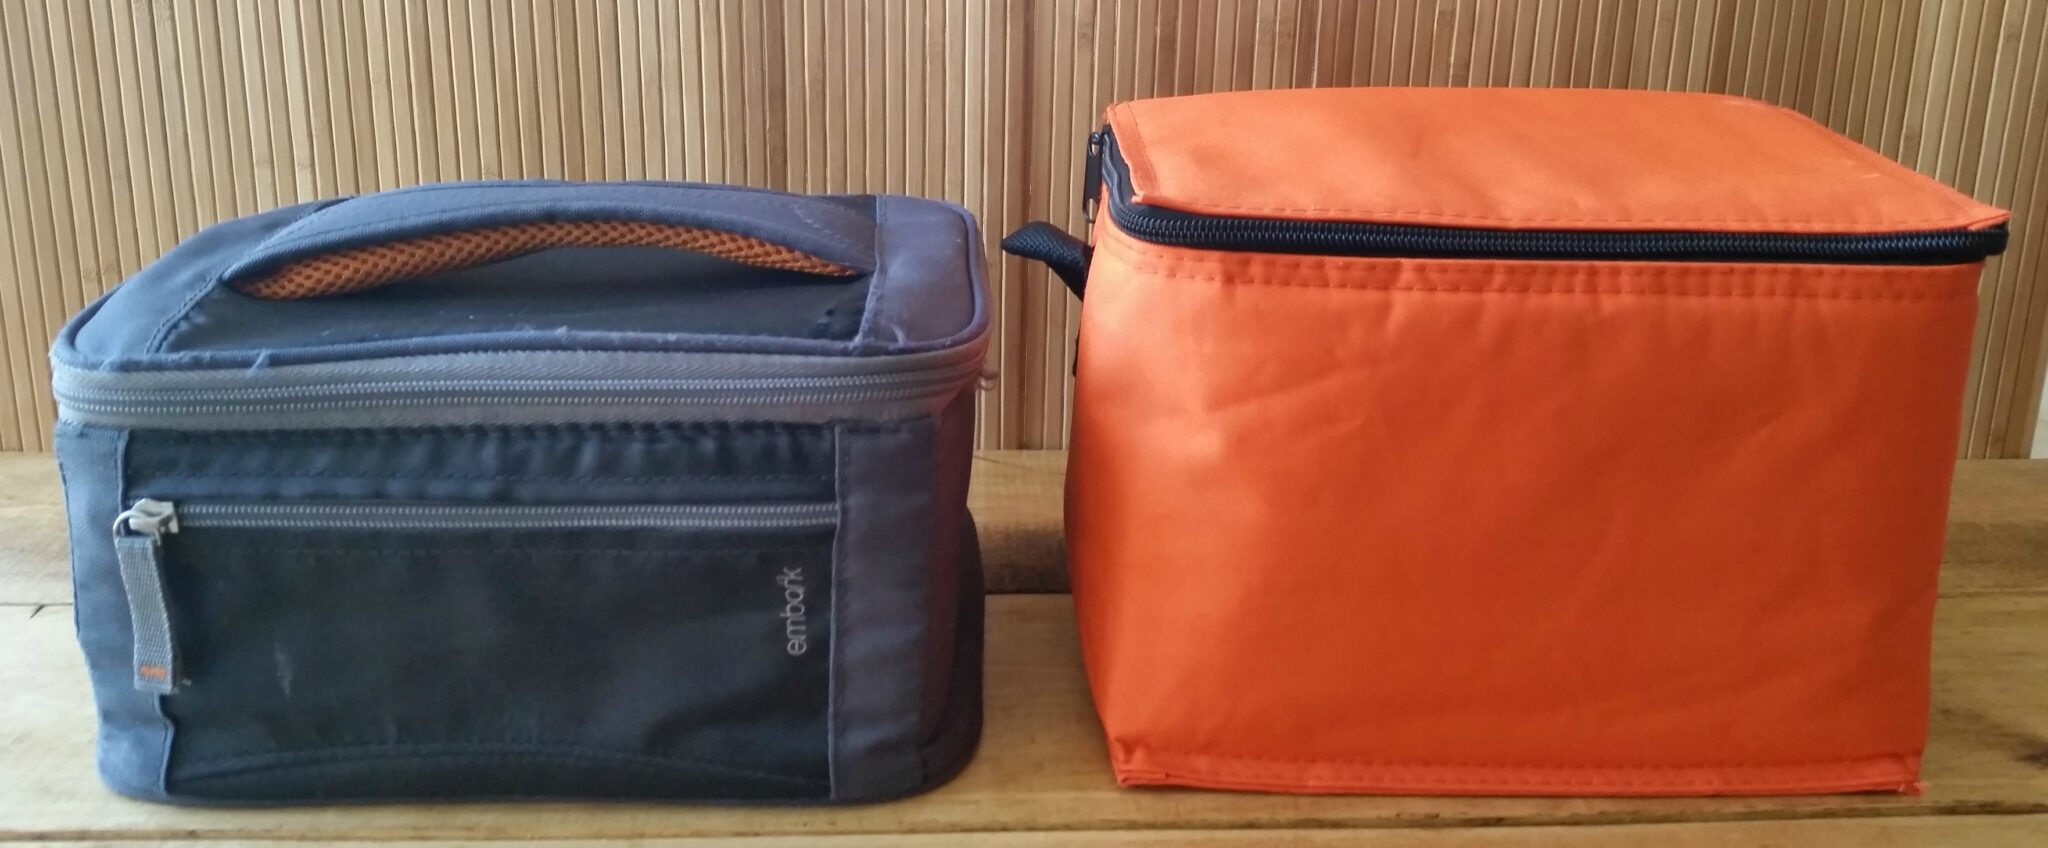 Square Embark Lunch Tote From Target Not Sold Online Or Easylunchbo Insulated Box Cooler Bag